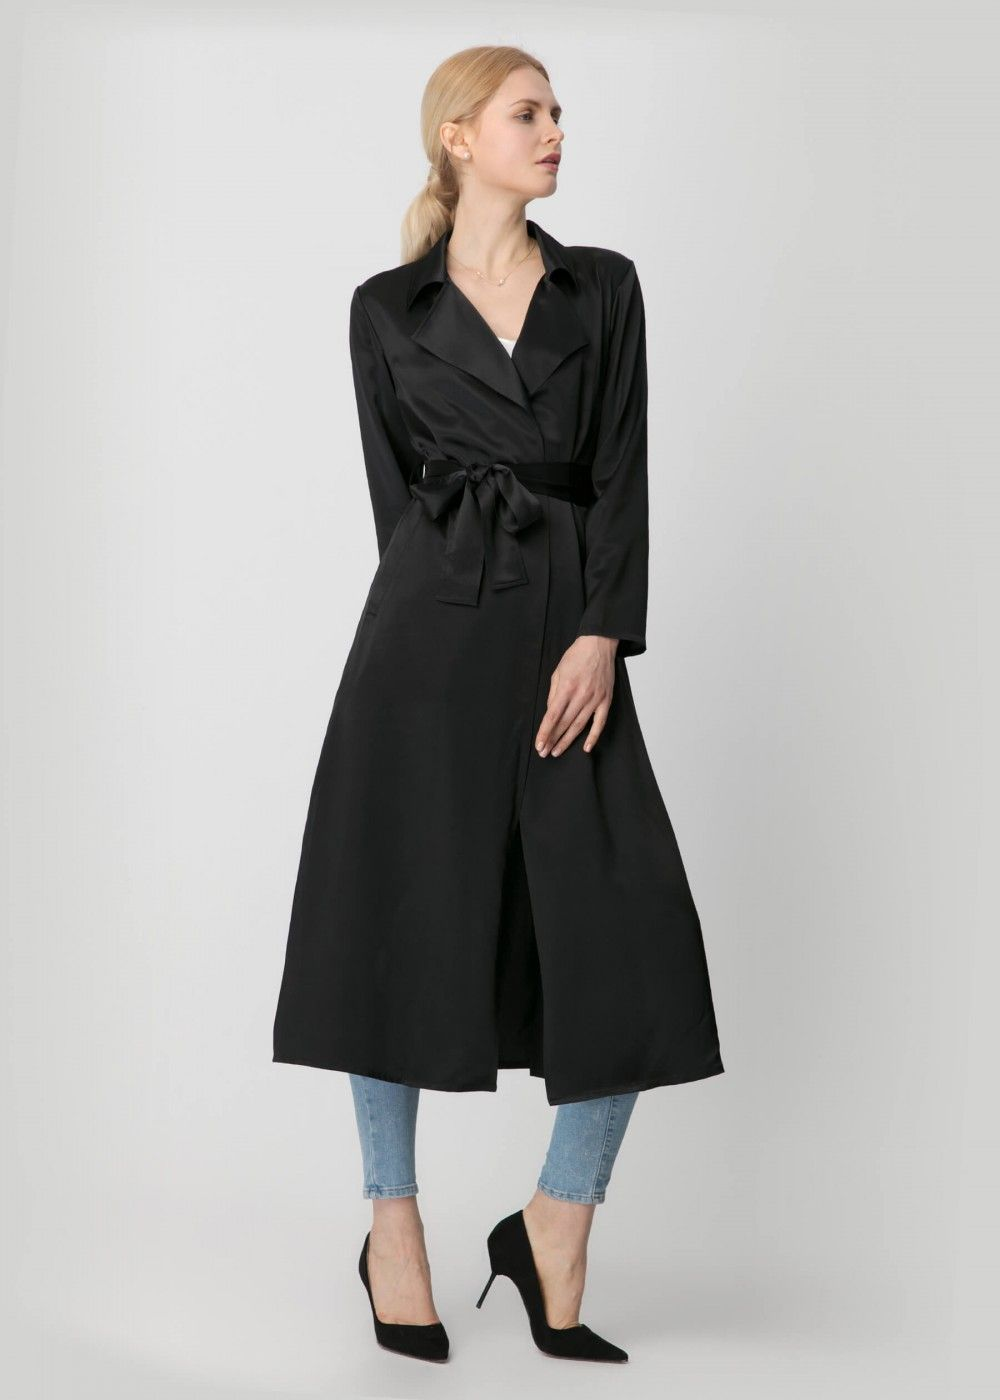 5d26a0af18 Get Confidence In This Silk Trench Coat | Lilysilk | Pinterest ...